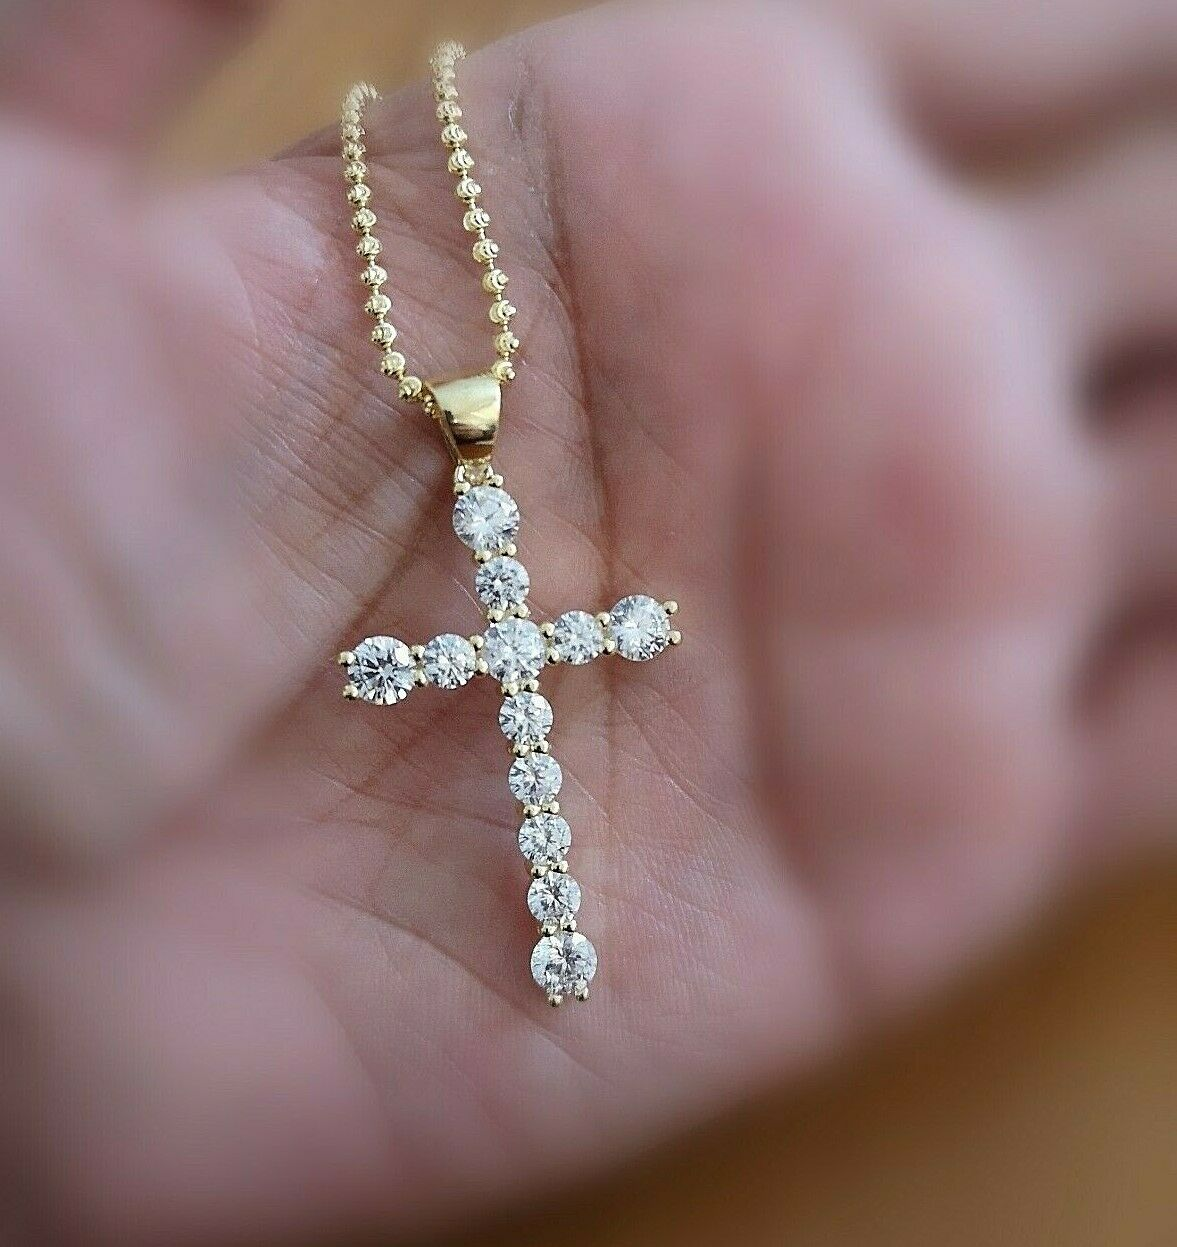 5Ct Diamond Cross Pendant Necklace with Chain 14K Yellow Gold over Women's Men's